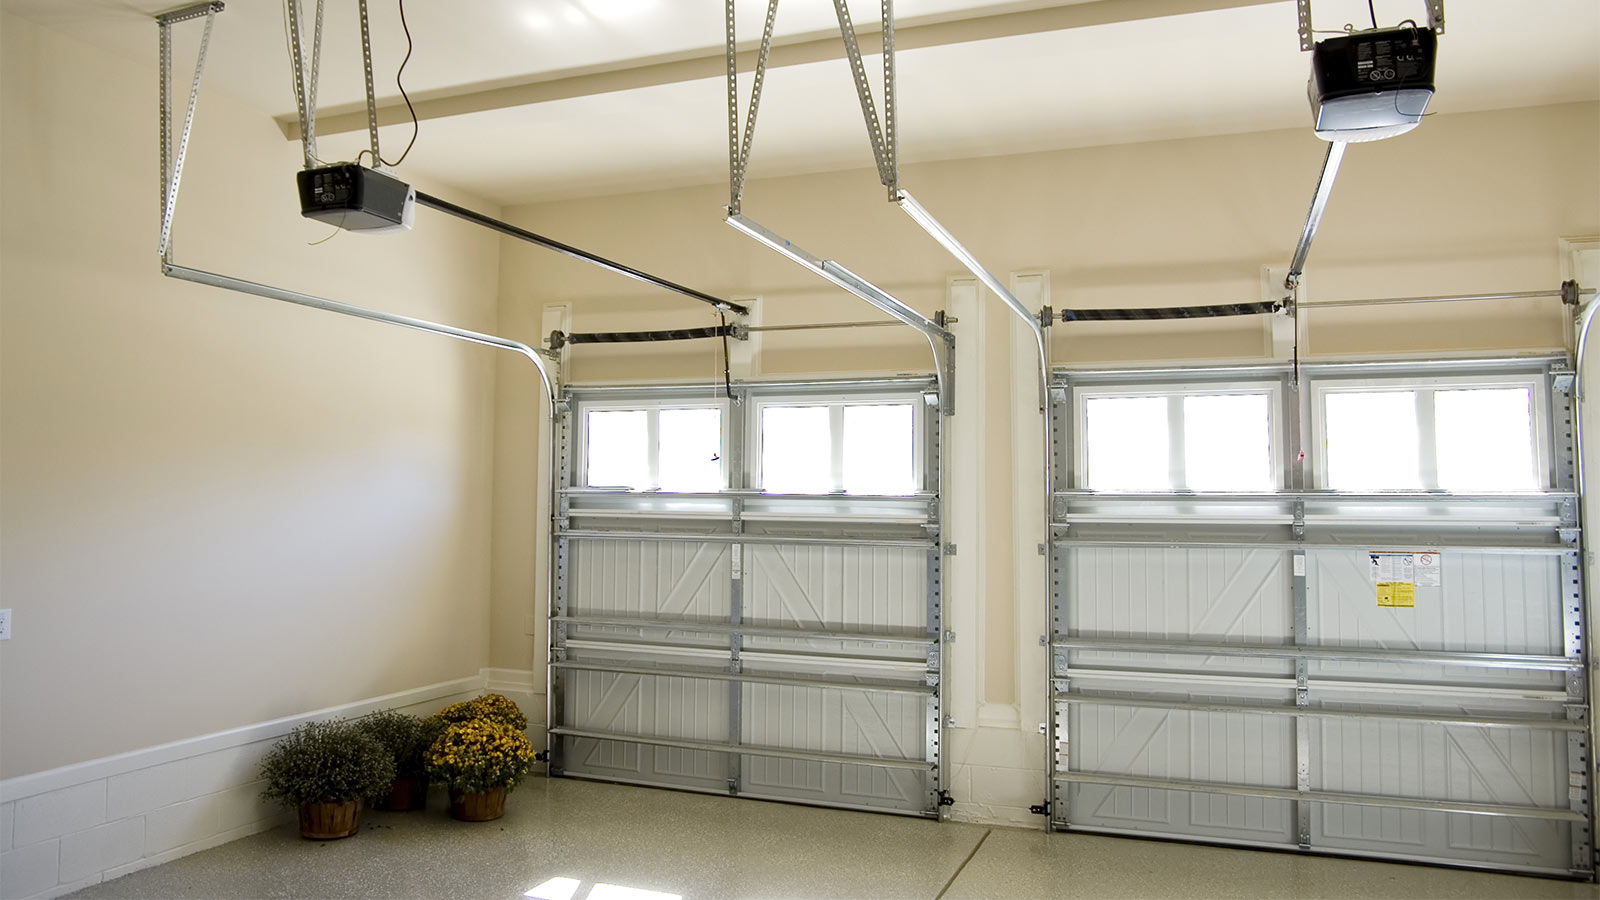 Sectional Garage Doors from Window Roller Shutters Maldon suppliers.